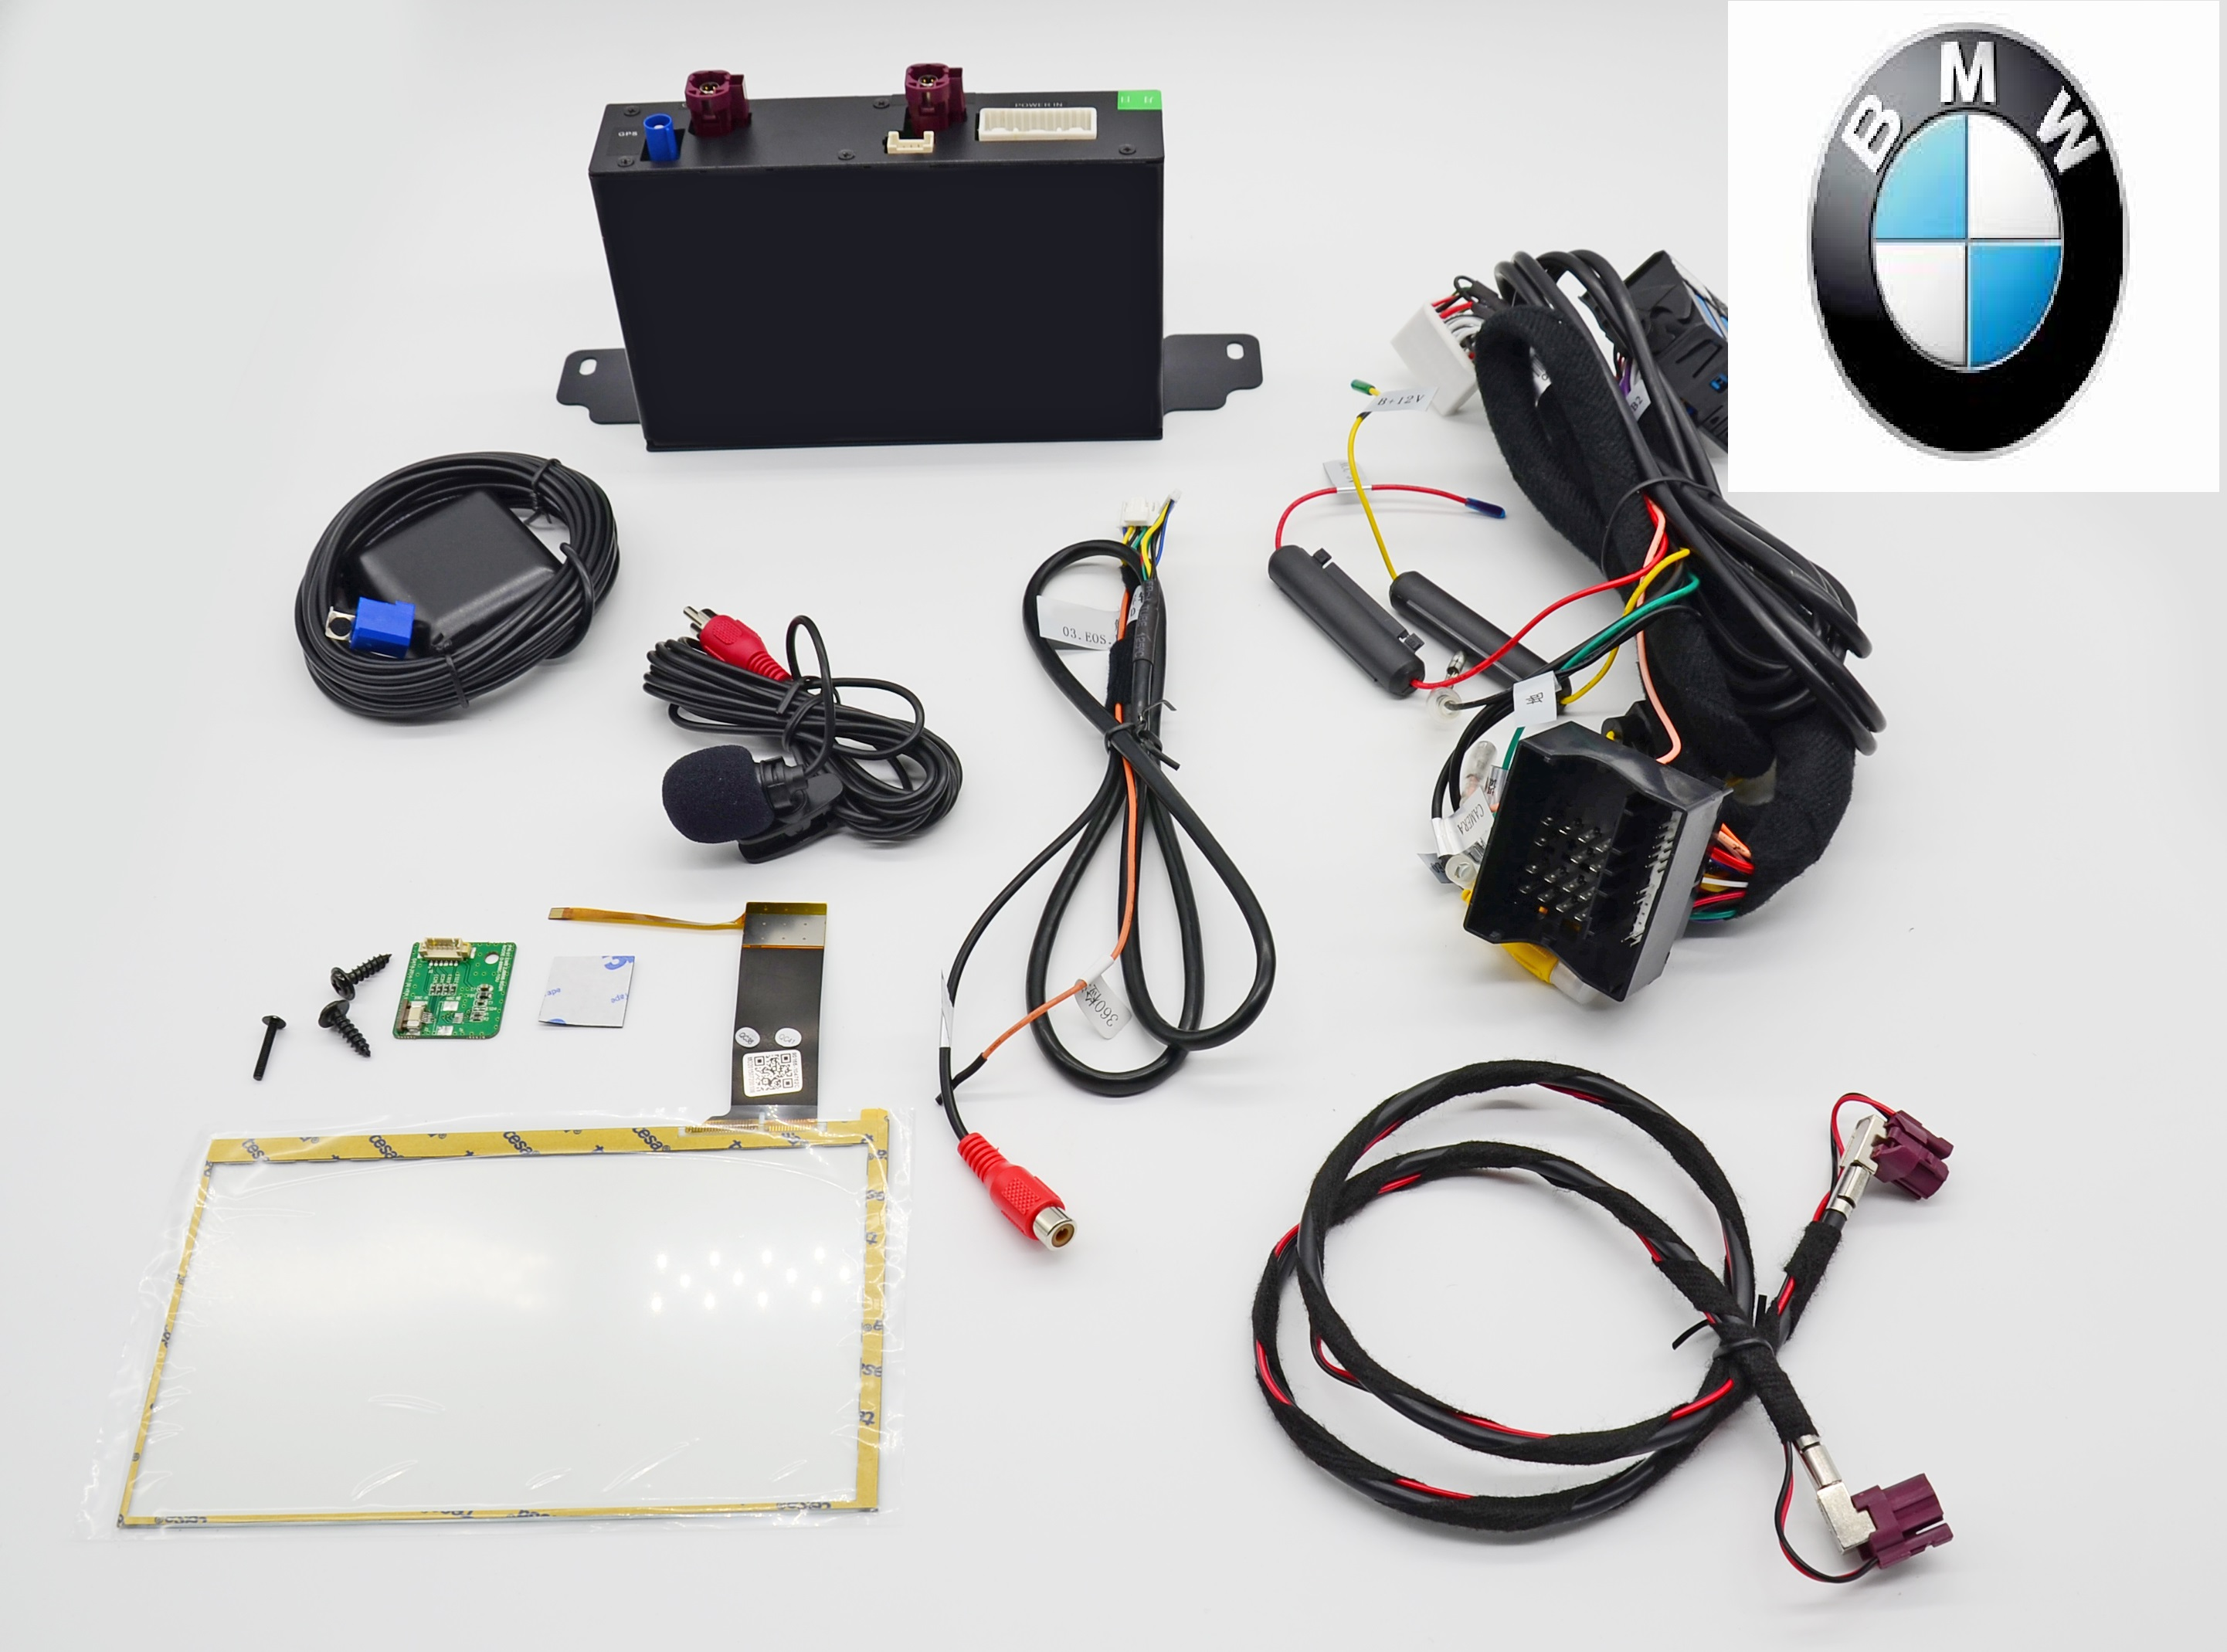 INTERFACE ANDROID BMW F SERIES Android BMW F series